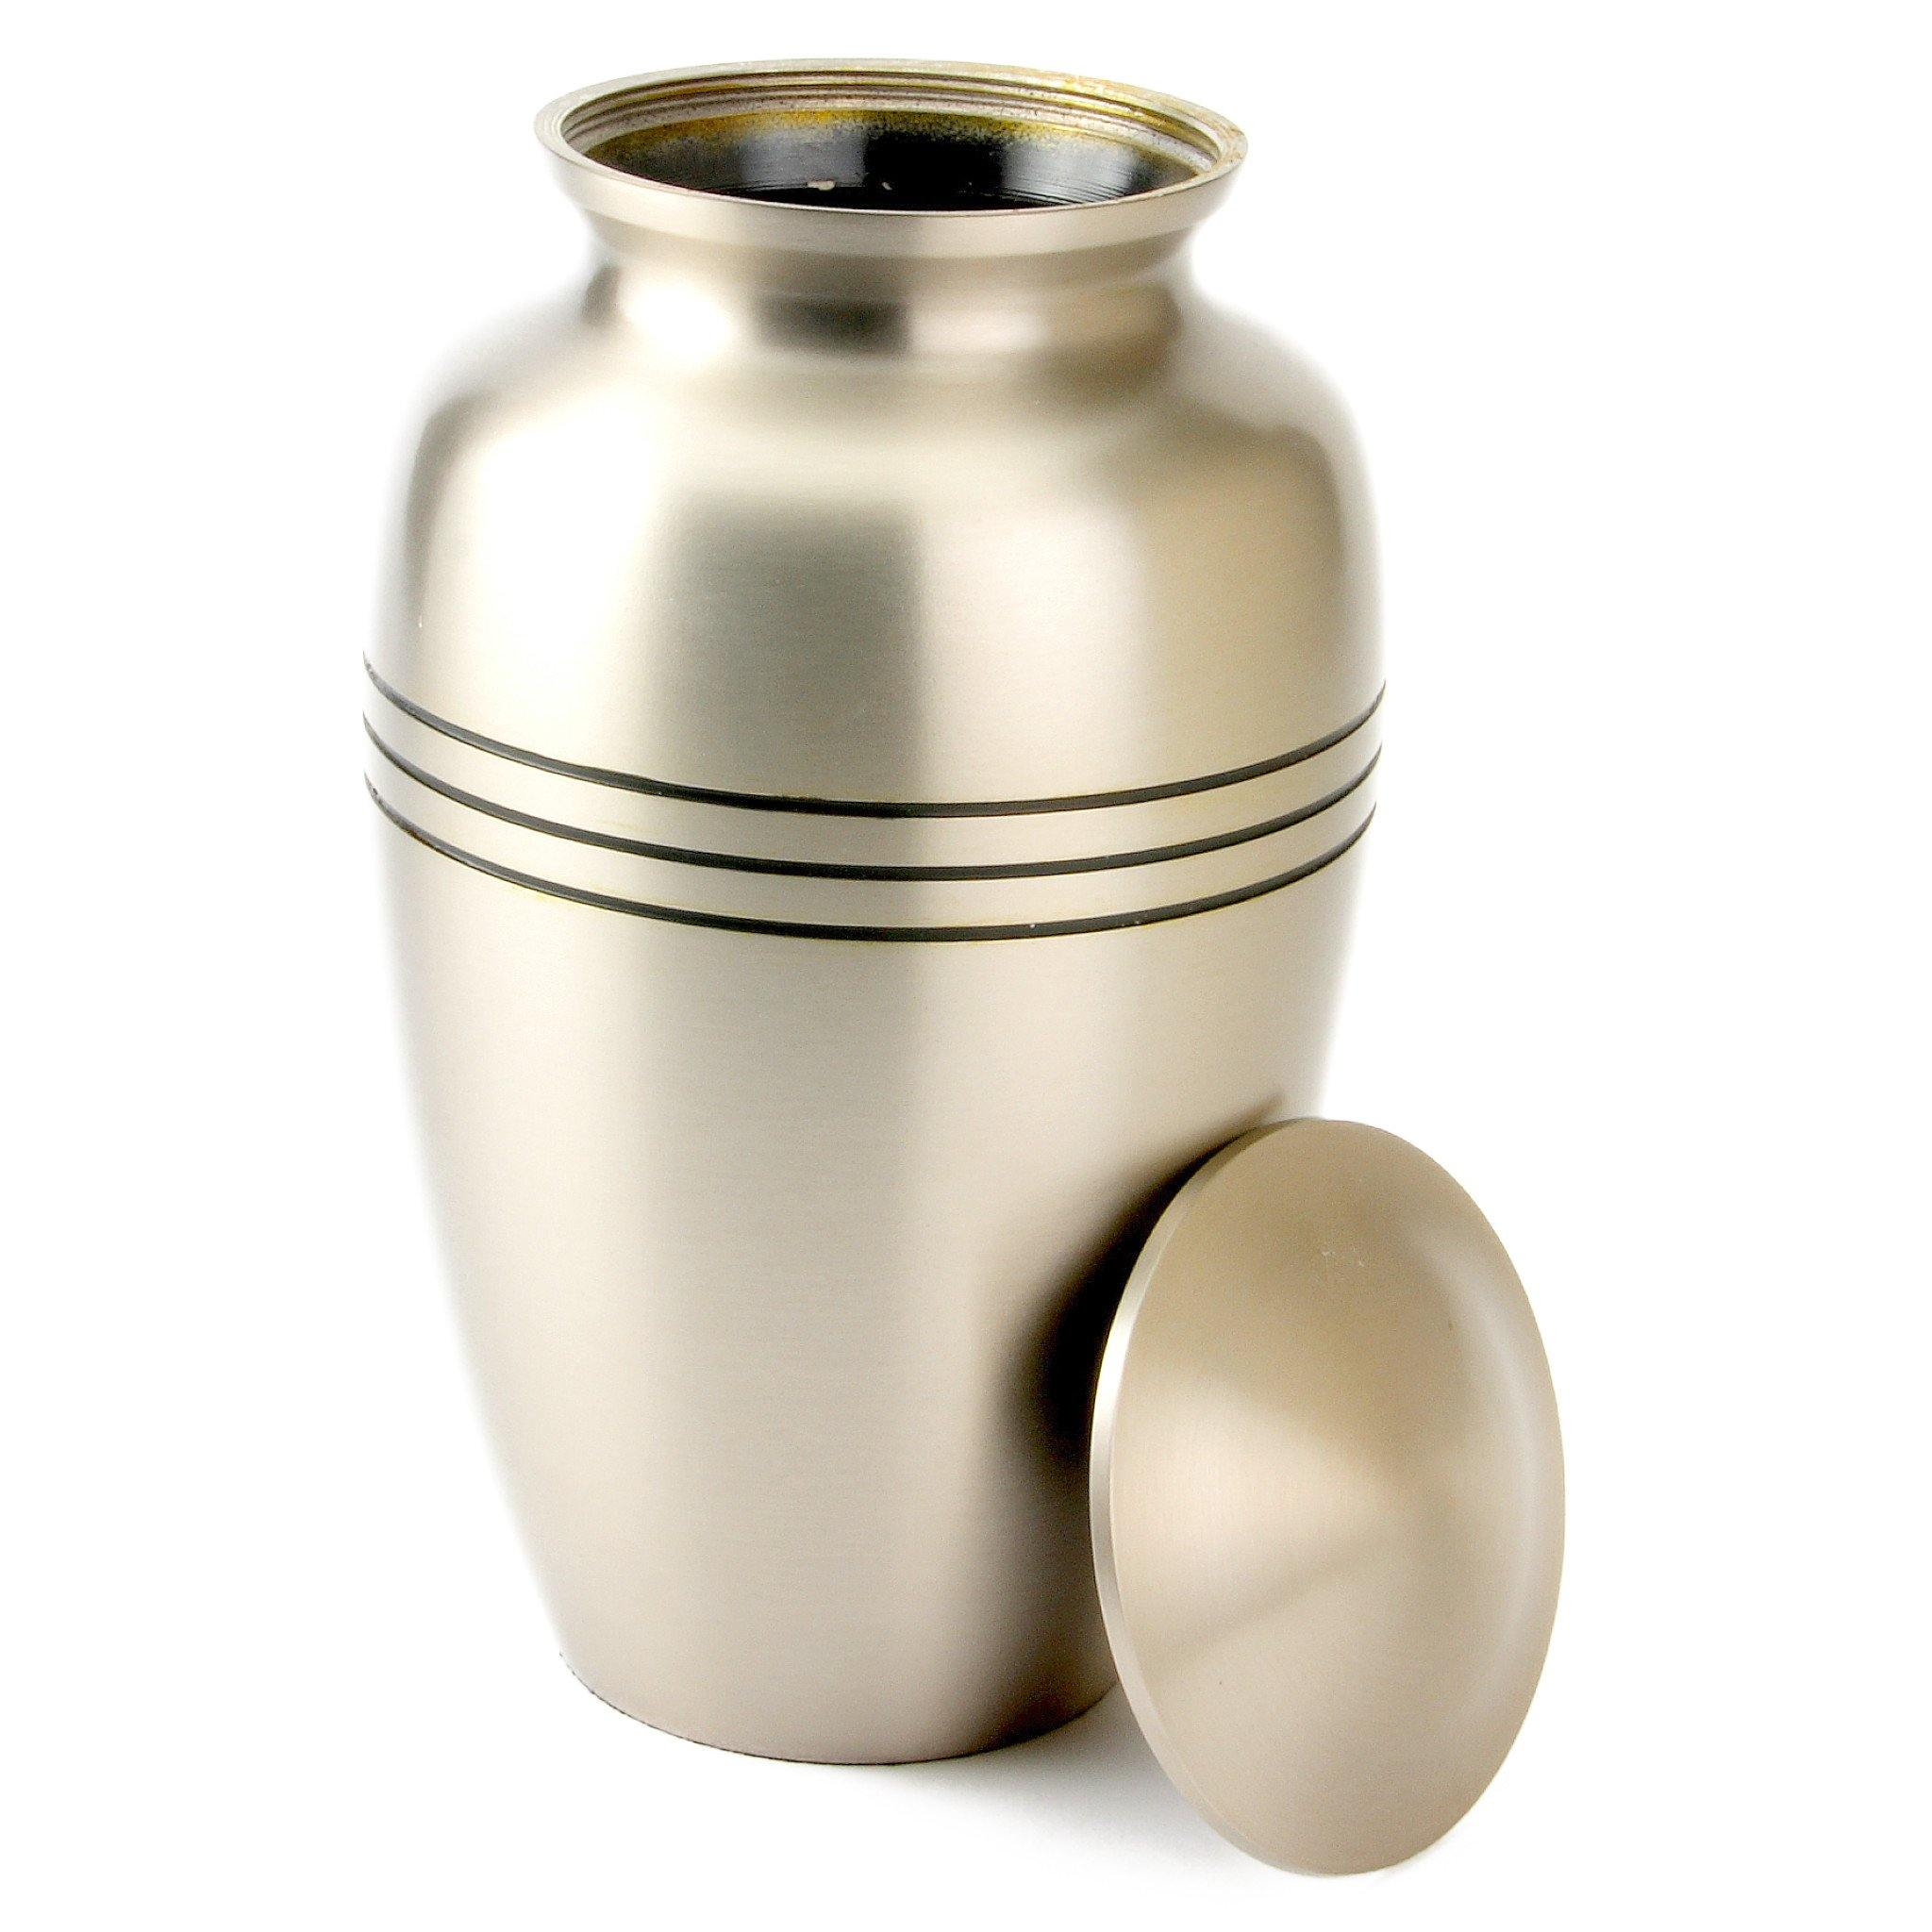 Cheadle Cremation Ashes Urn Adult - Urns UK